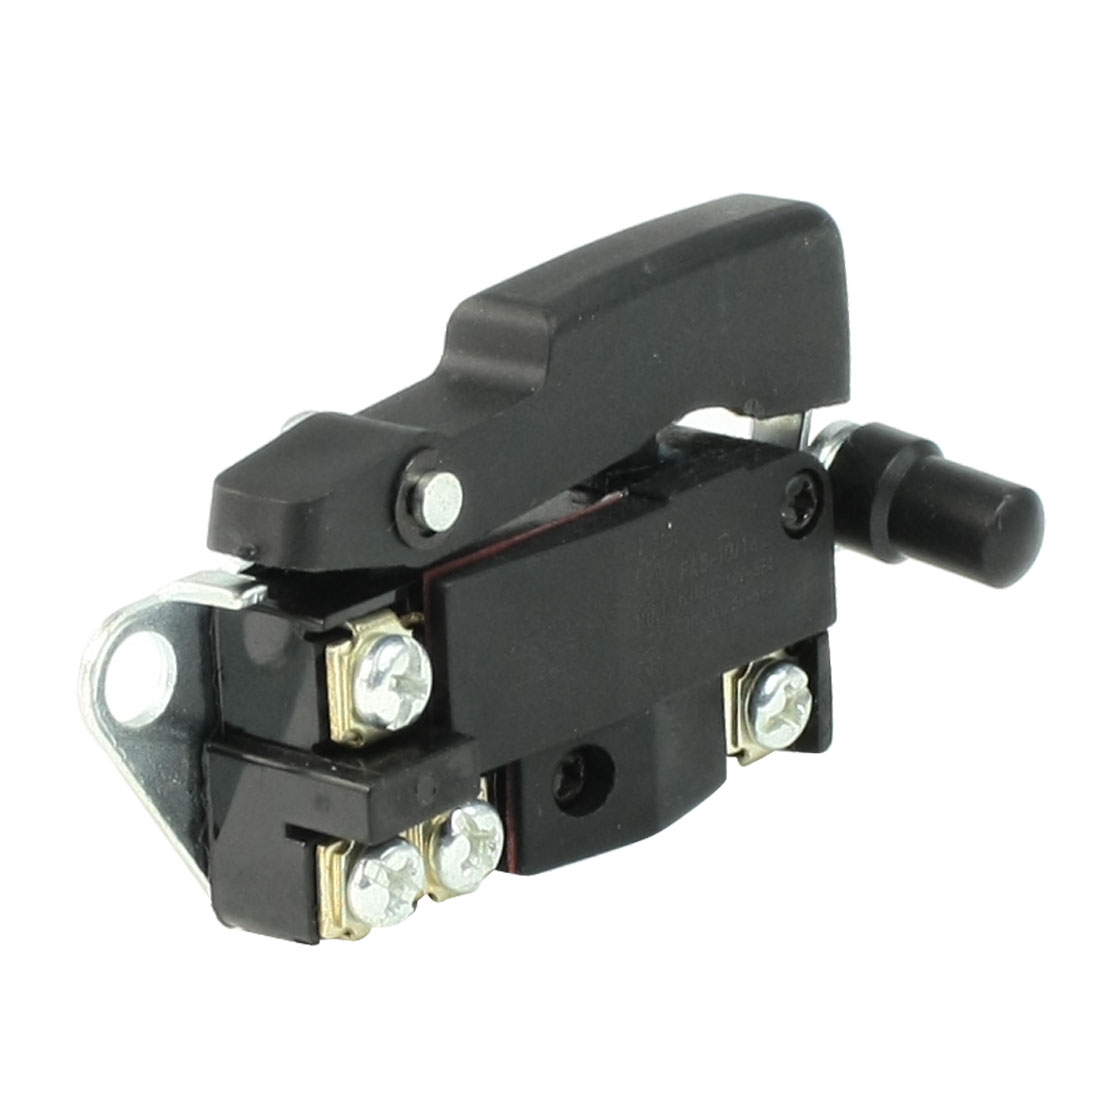 AC 250V/12A 125V/20A SPST NO Manual Lock on Electric Trigger Switch